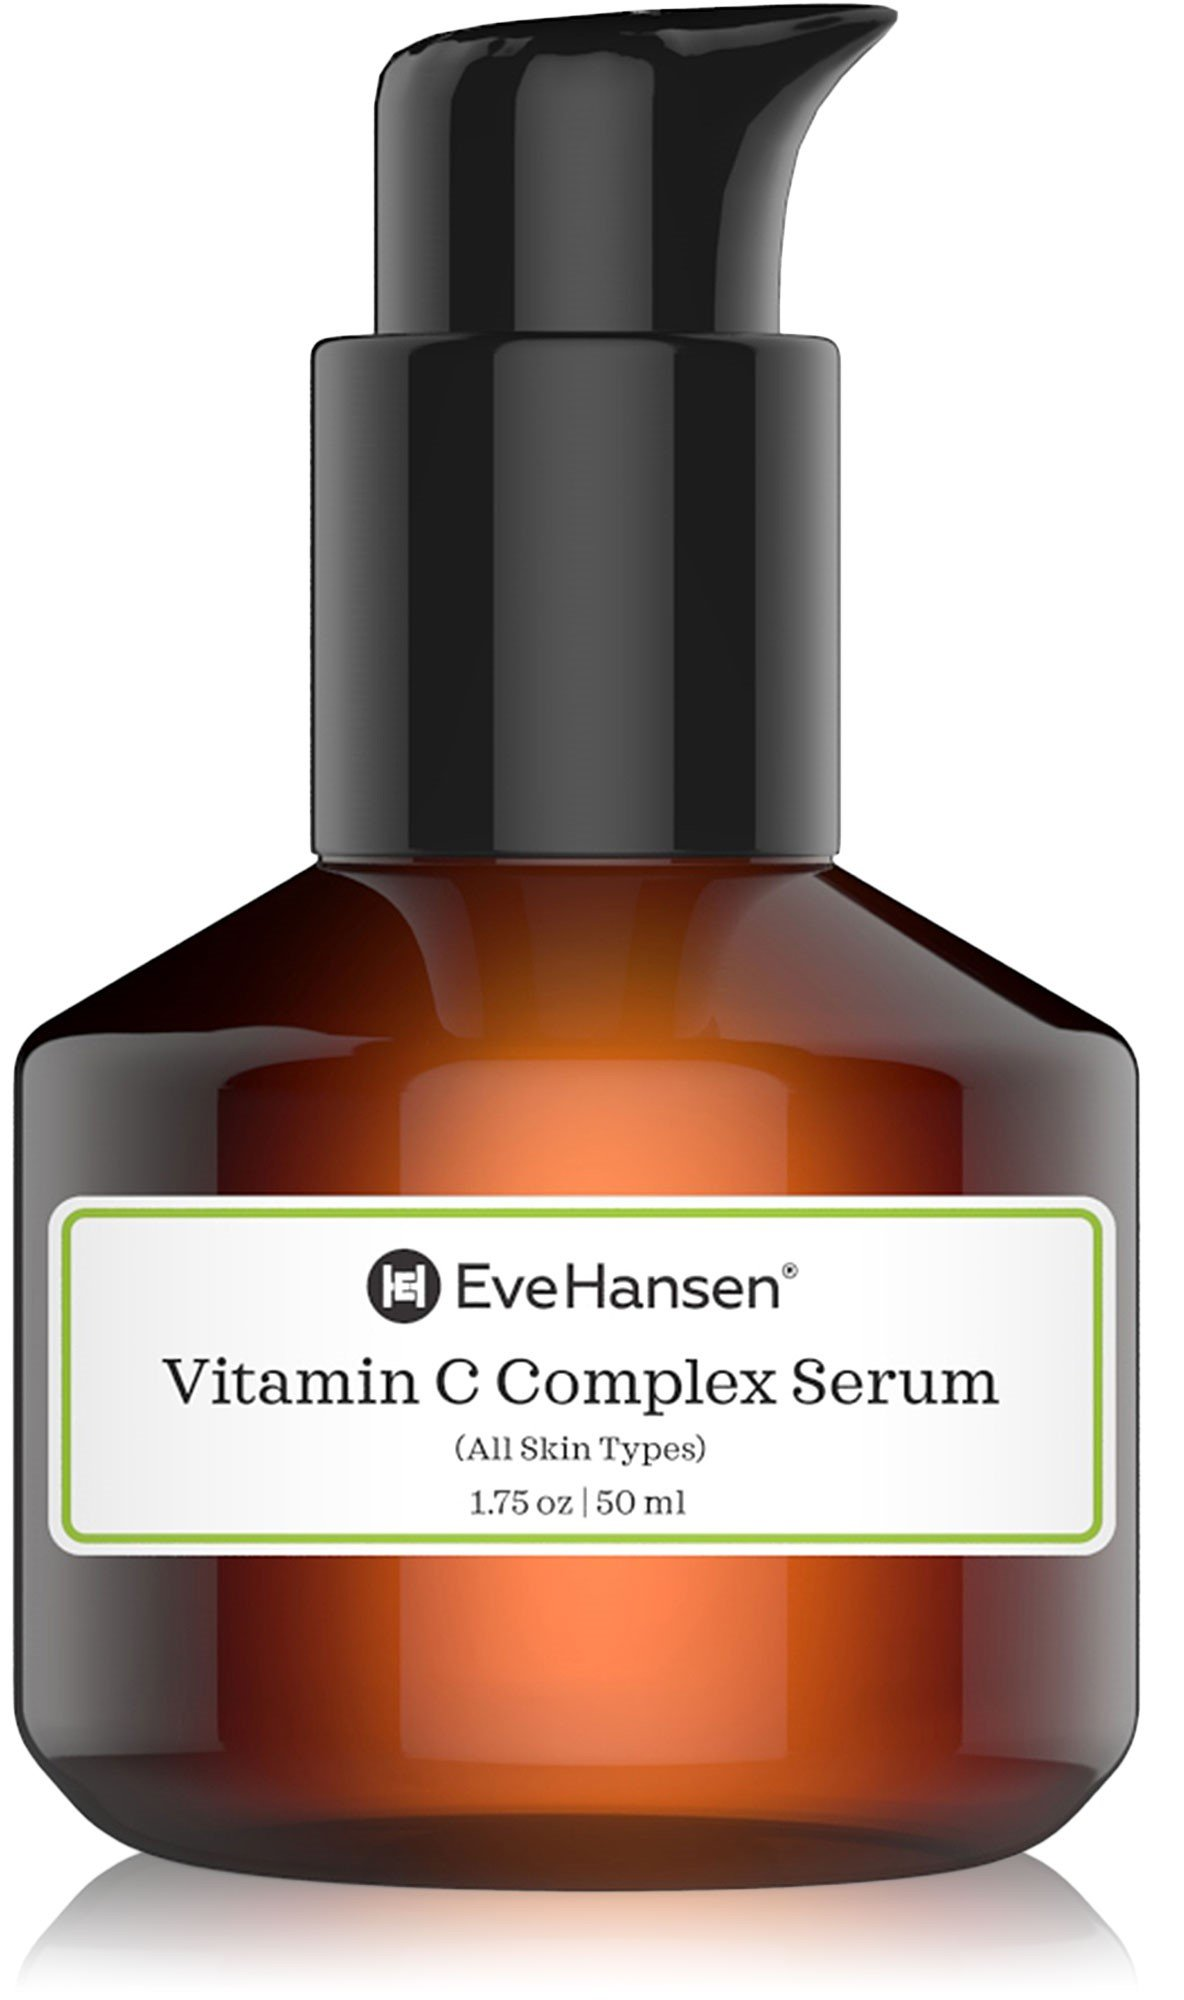 Complex Vitamin C Serum by Eve Hansen. Natural and Pure Anti Aging Serum that Protects Against Sun Damage and Wrinkles. 2 Ounces.